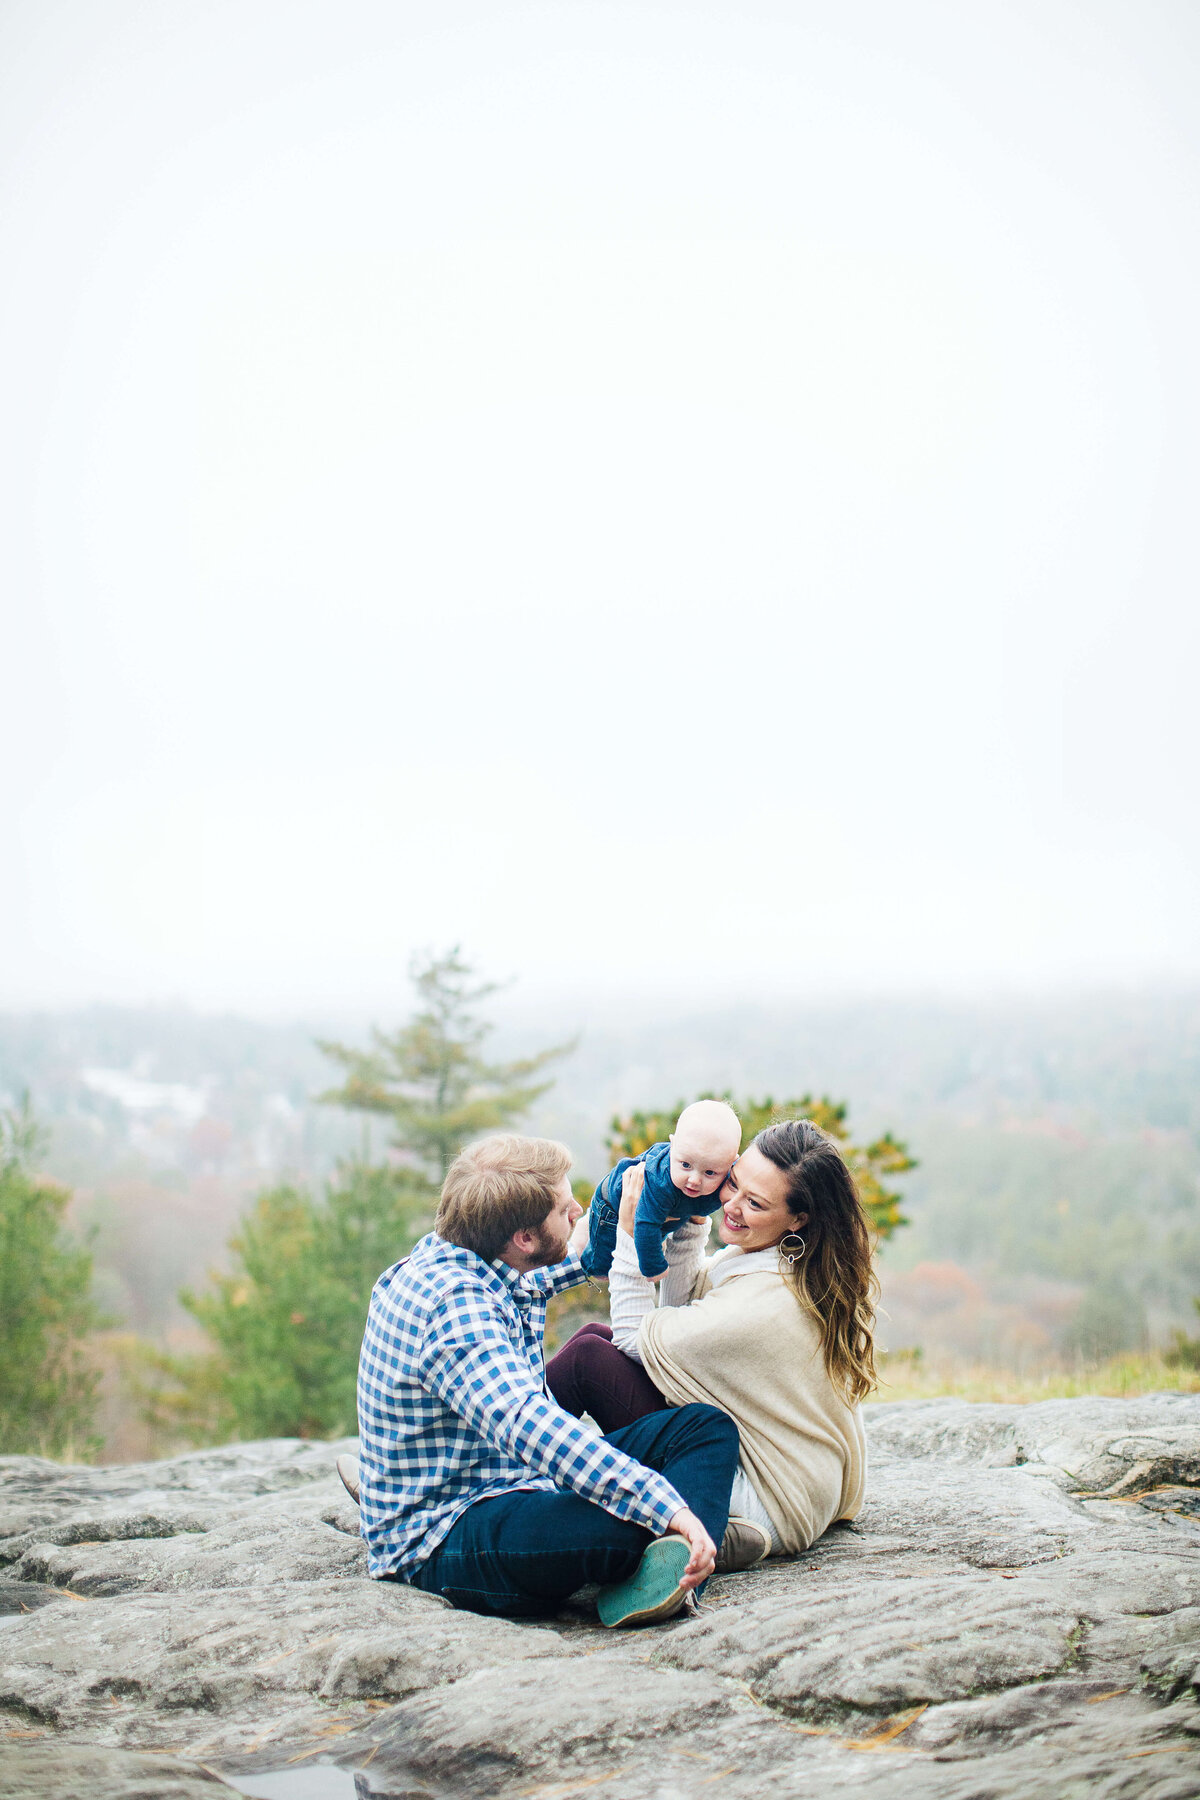 Izzy + Co. Savannah Wedding, Maternity, Newborn and Lifestyle Photographers